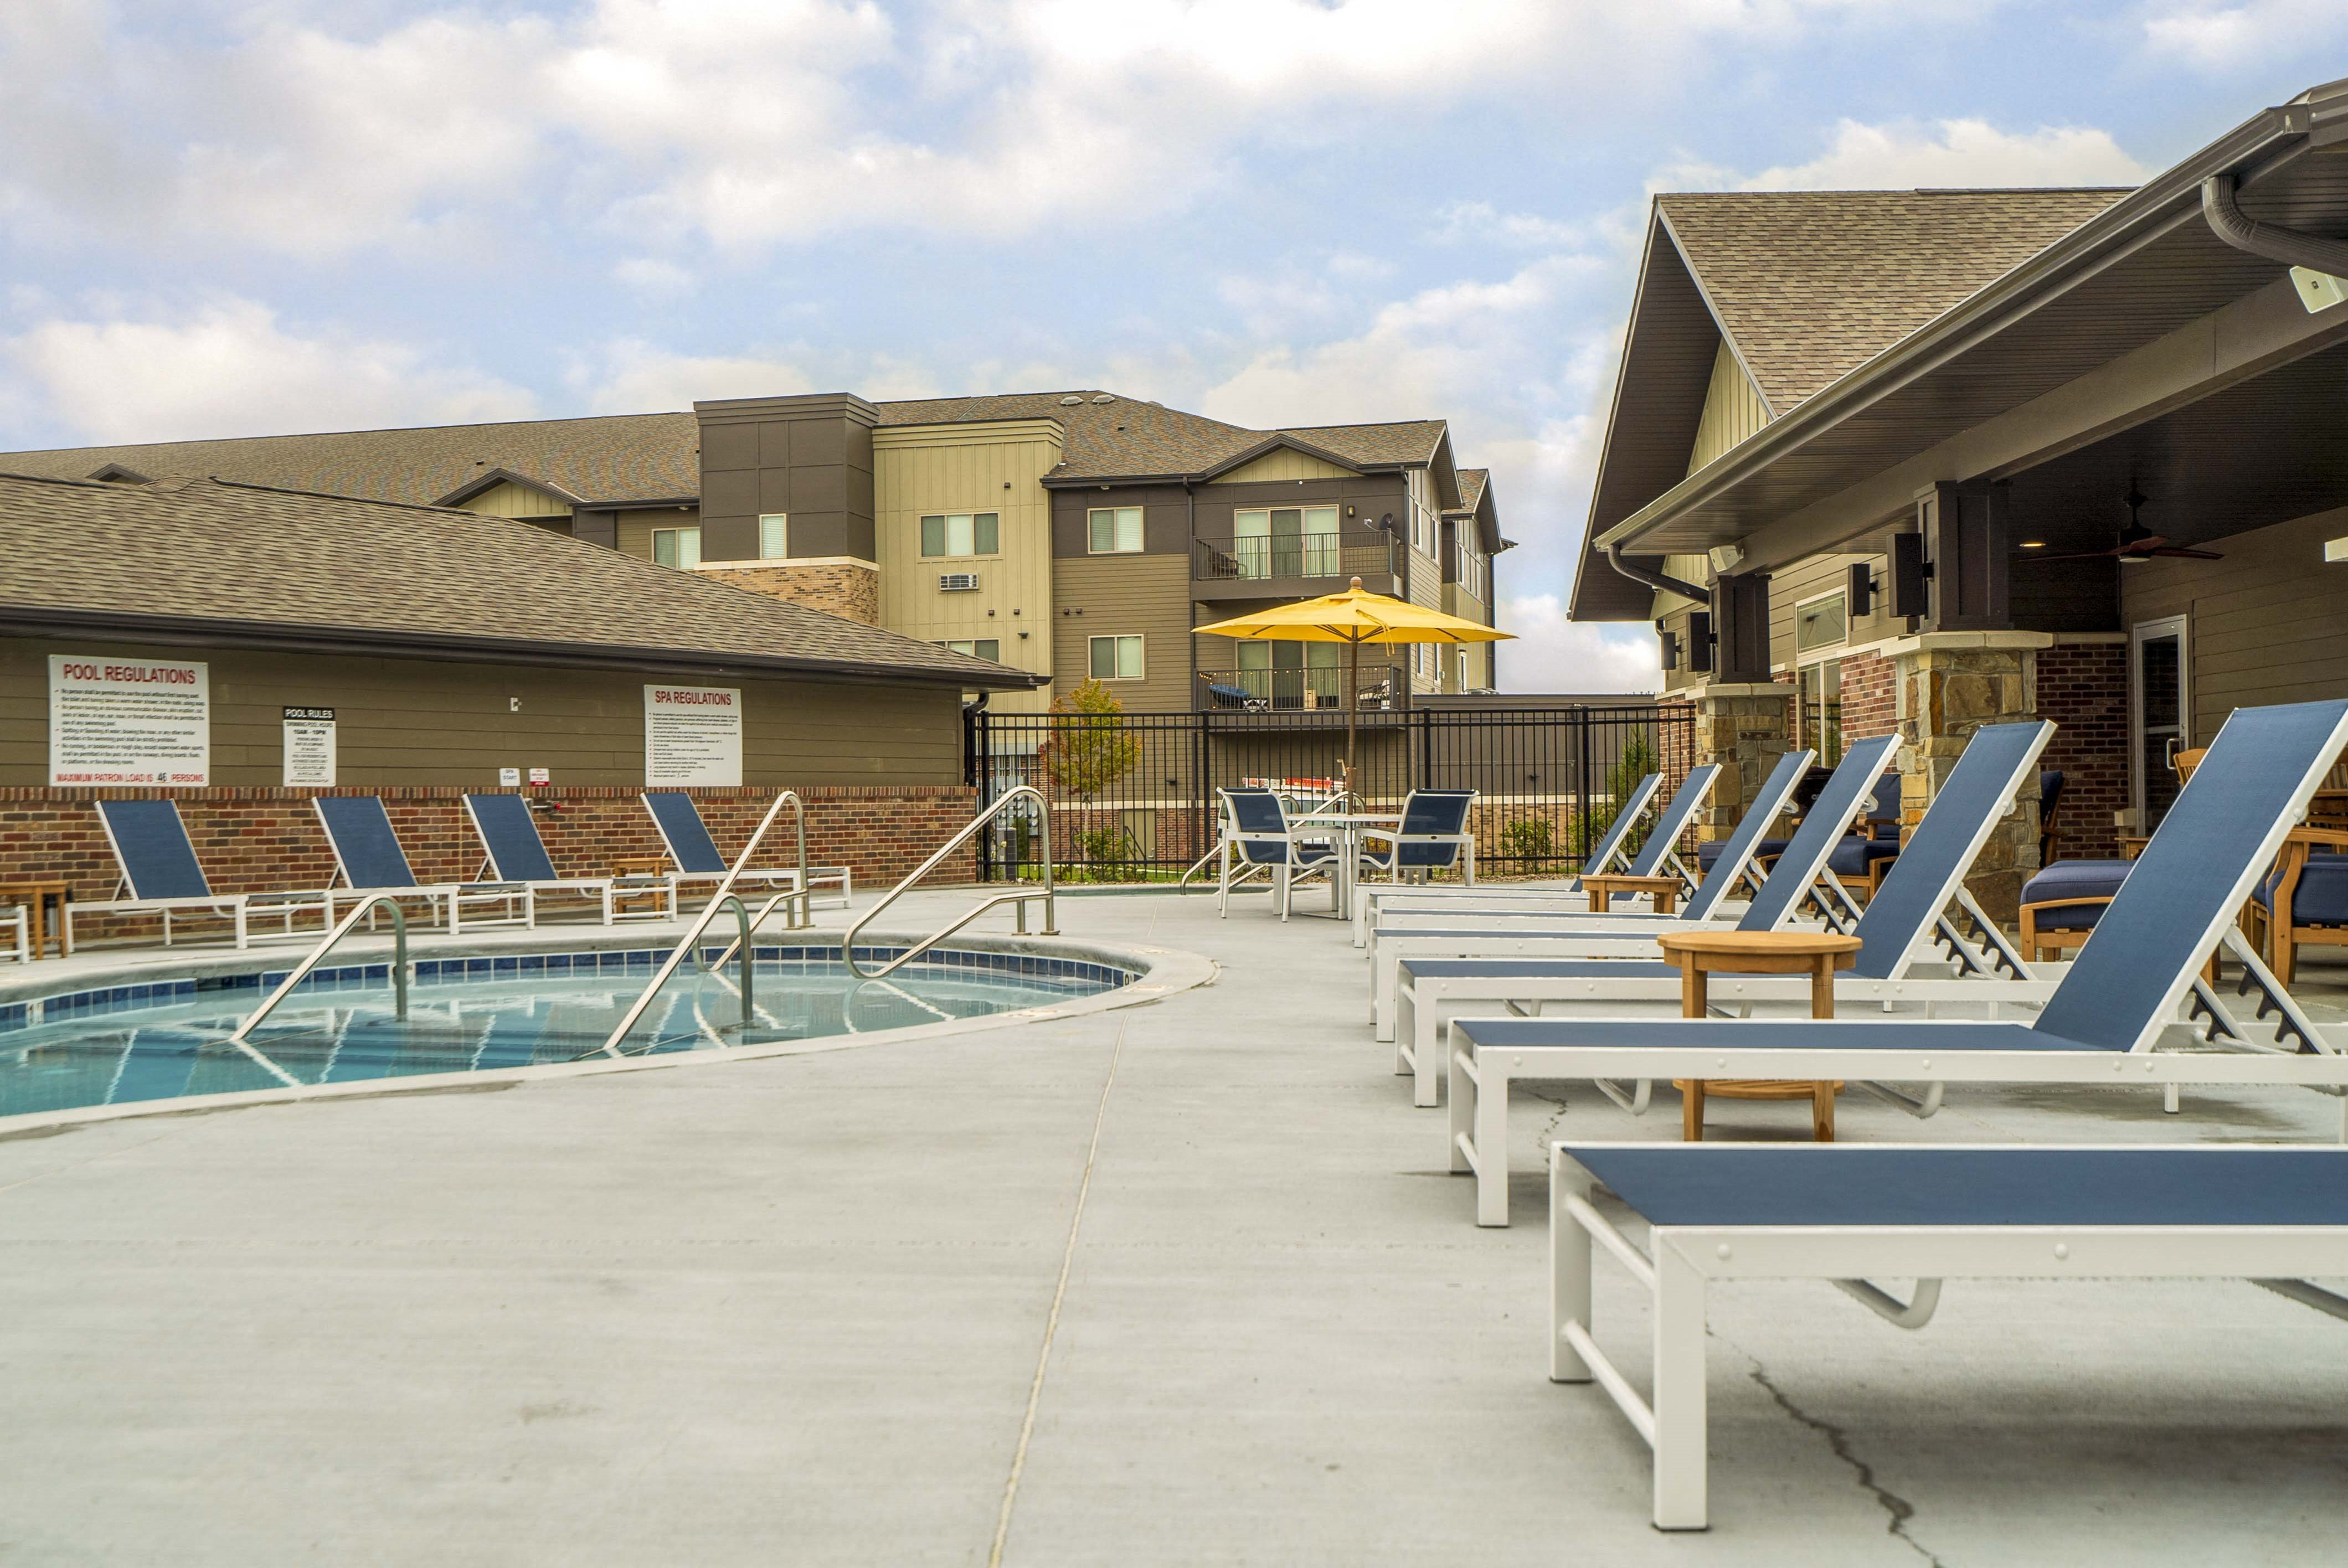 Luxury pool and hot tub view of WH Flats new luxury apartments in south Lincoln NE 68516